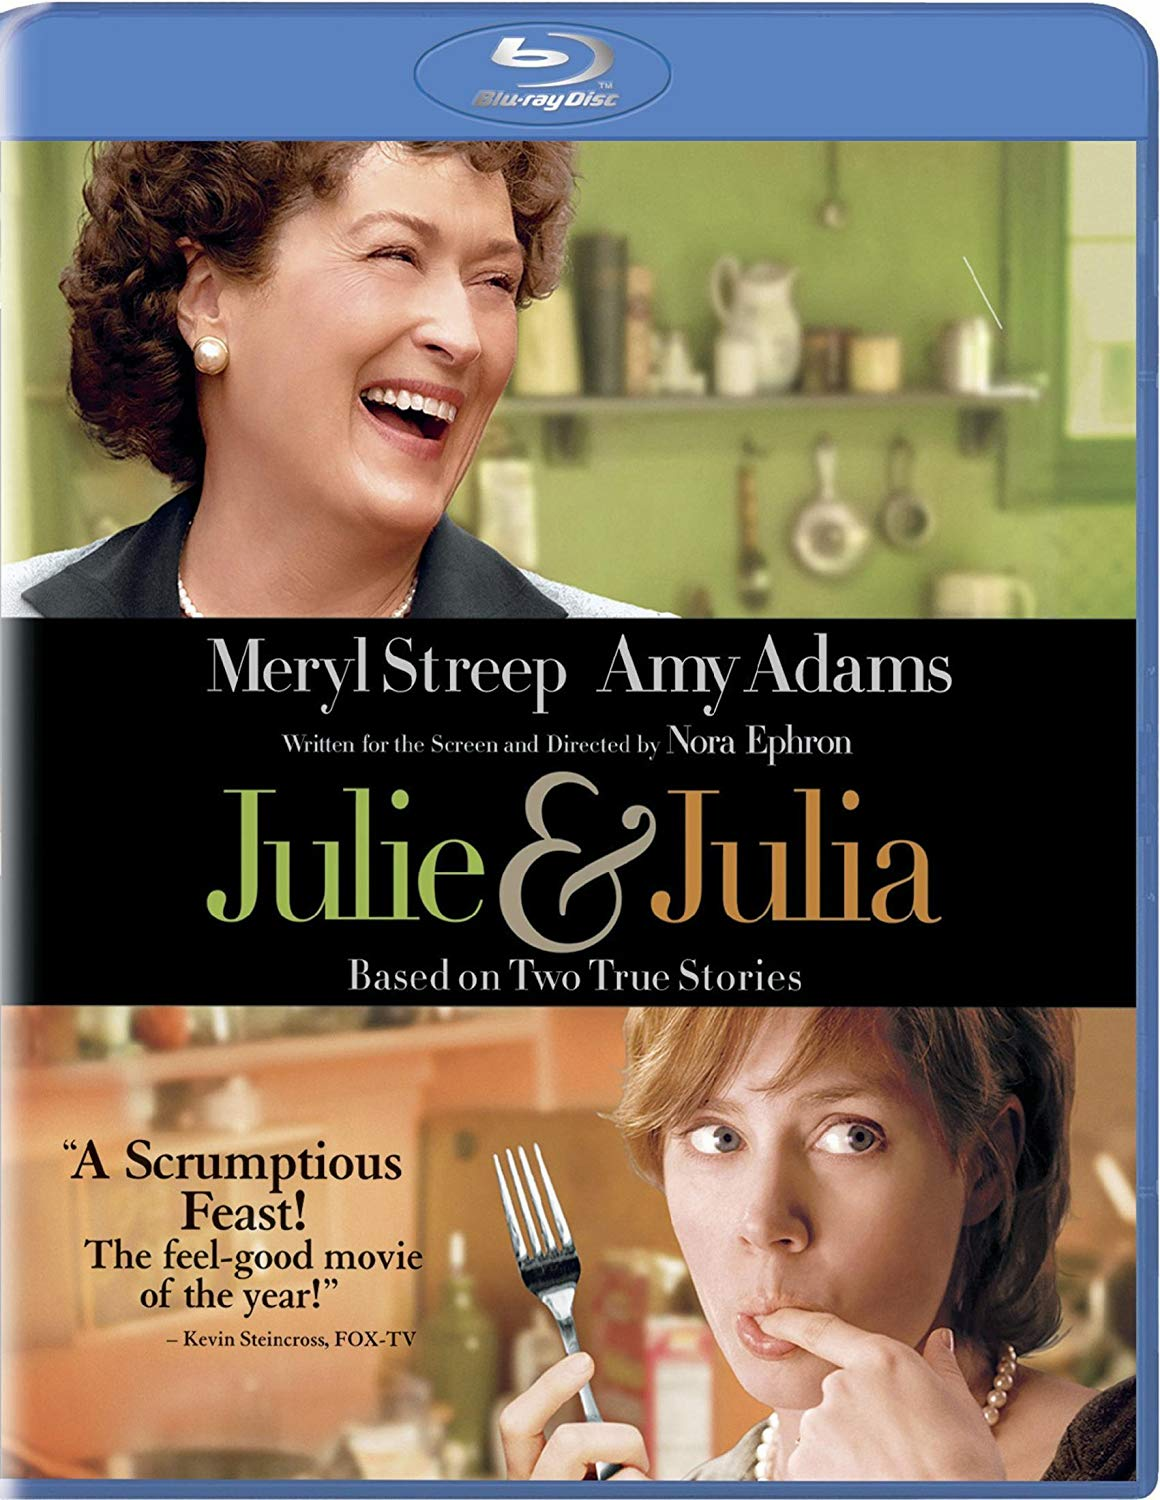 Julie & Julia Blu-ray Movie (USED)